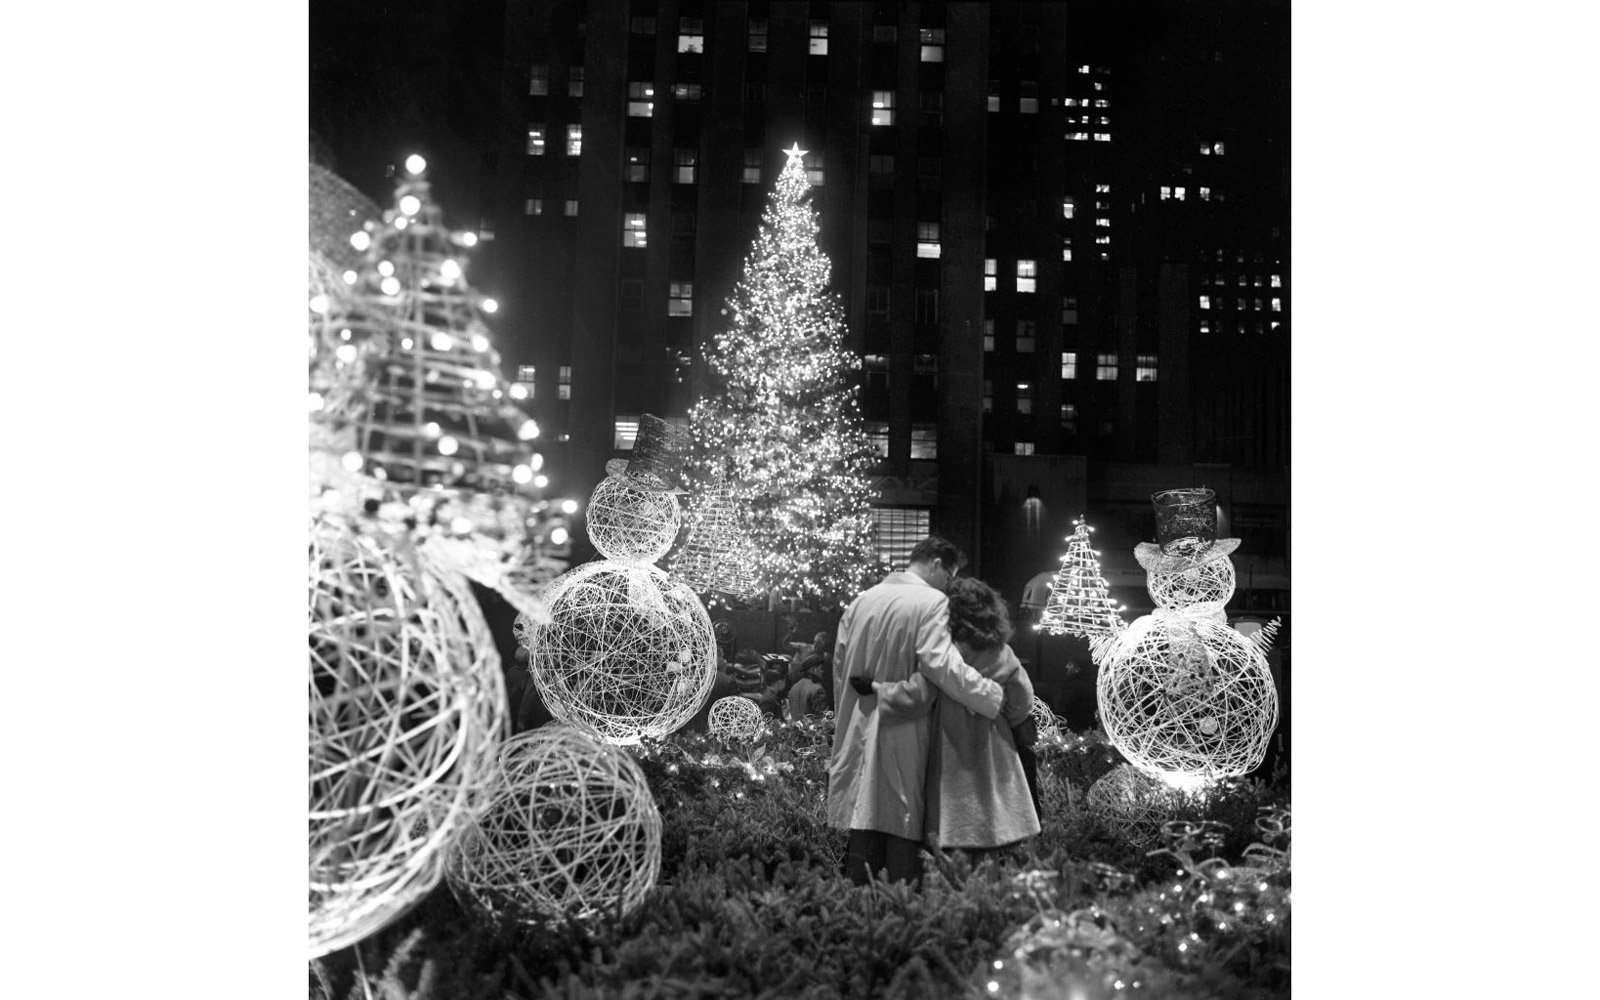 A pair of lovers are entranced by the beauty of the scene after the traditional Rockefeller Center Christmas tree was lighted.